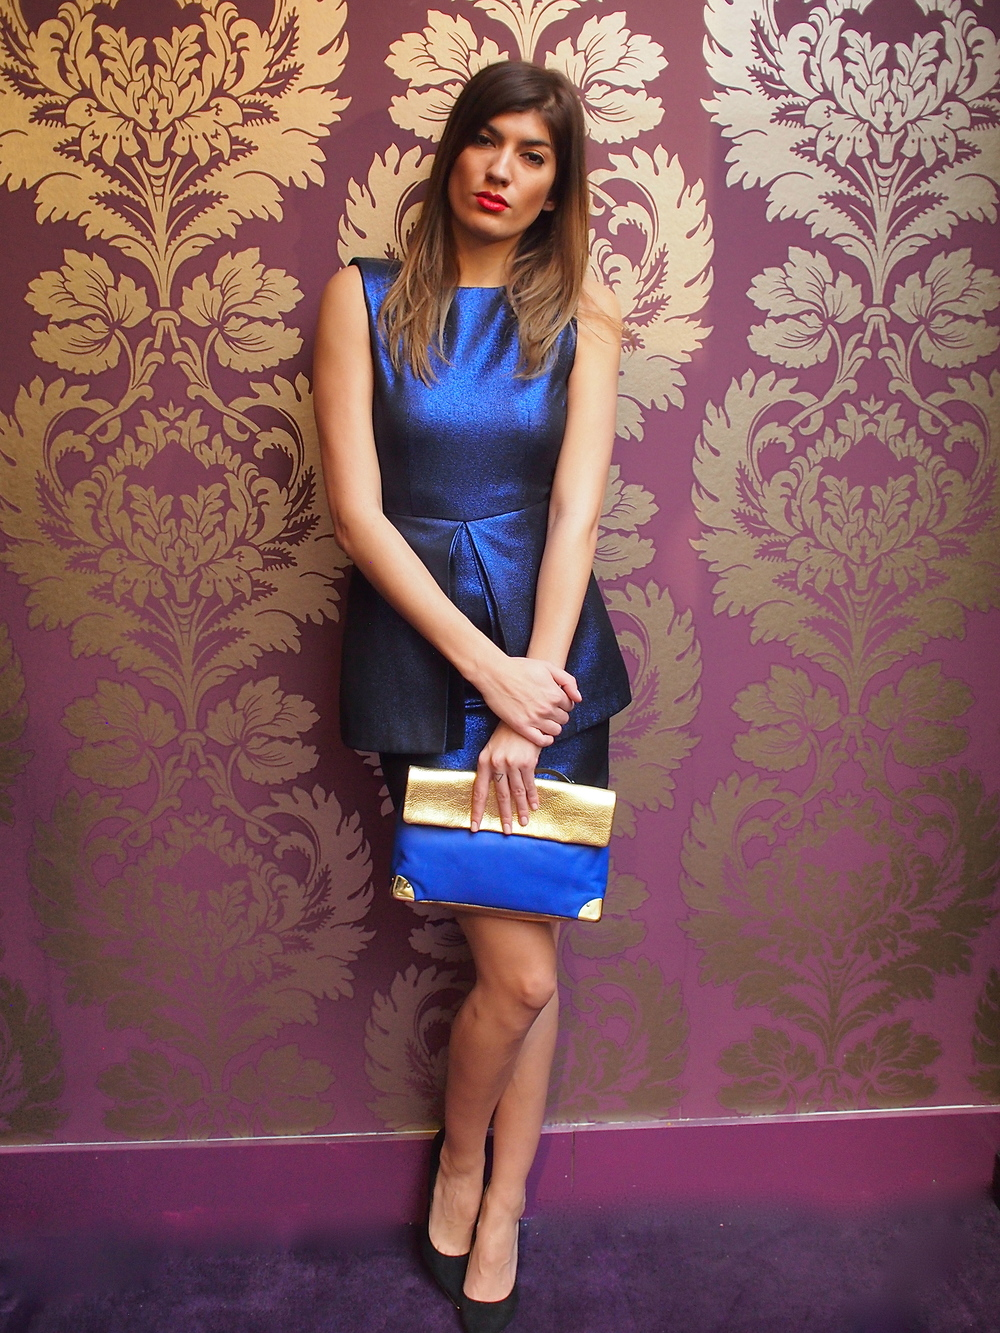 Tiger of Sweden - Chantelle Dress $339, Golden Lane - Gold and Blue Duo Clutch $299, Dolce Vita - Yanni Pump $215